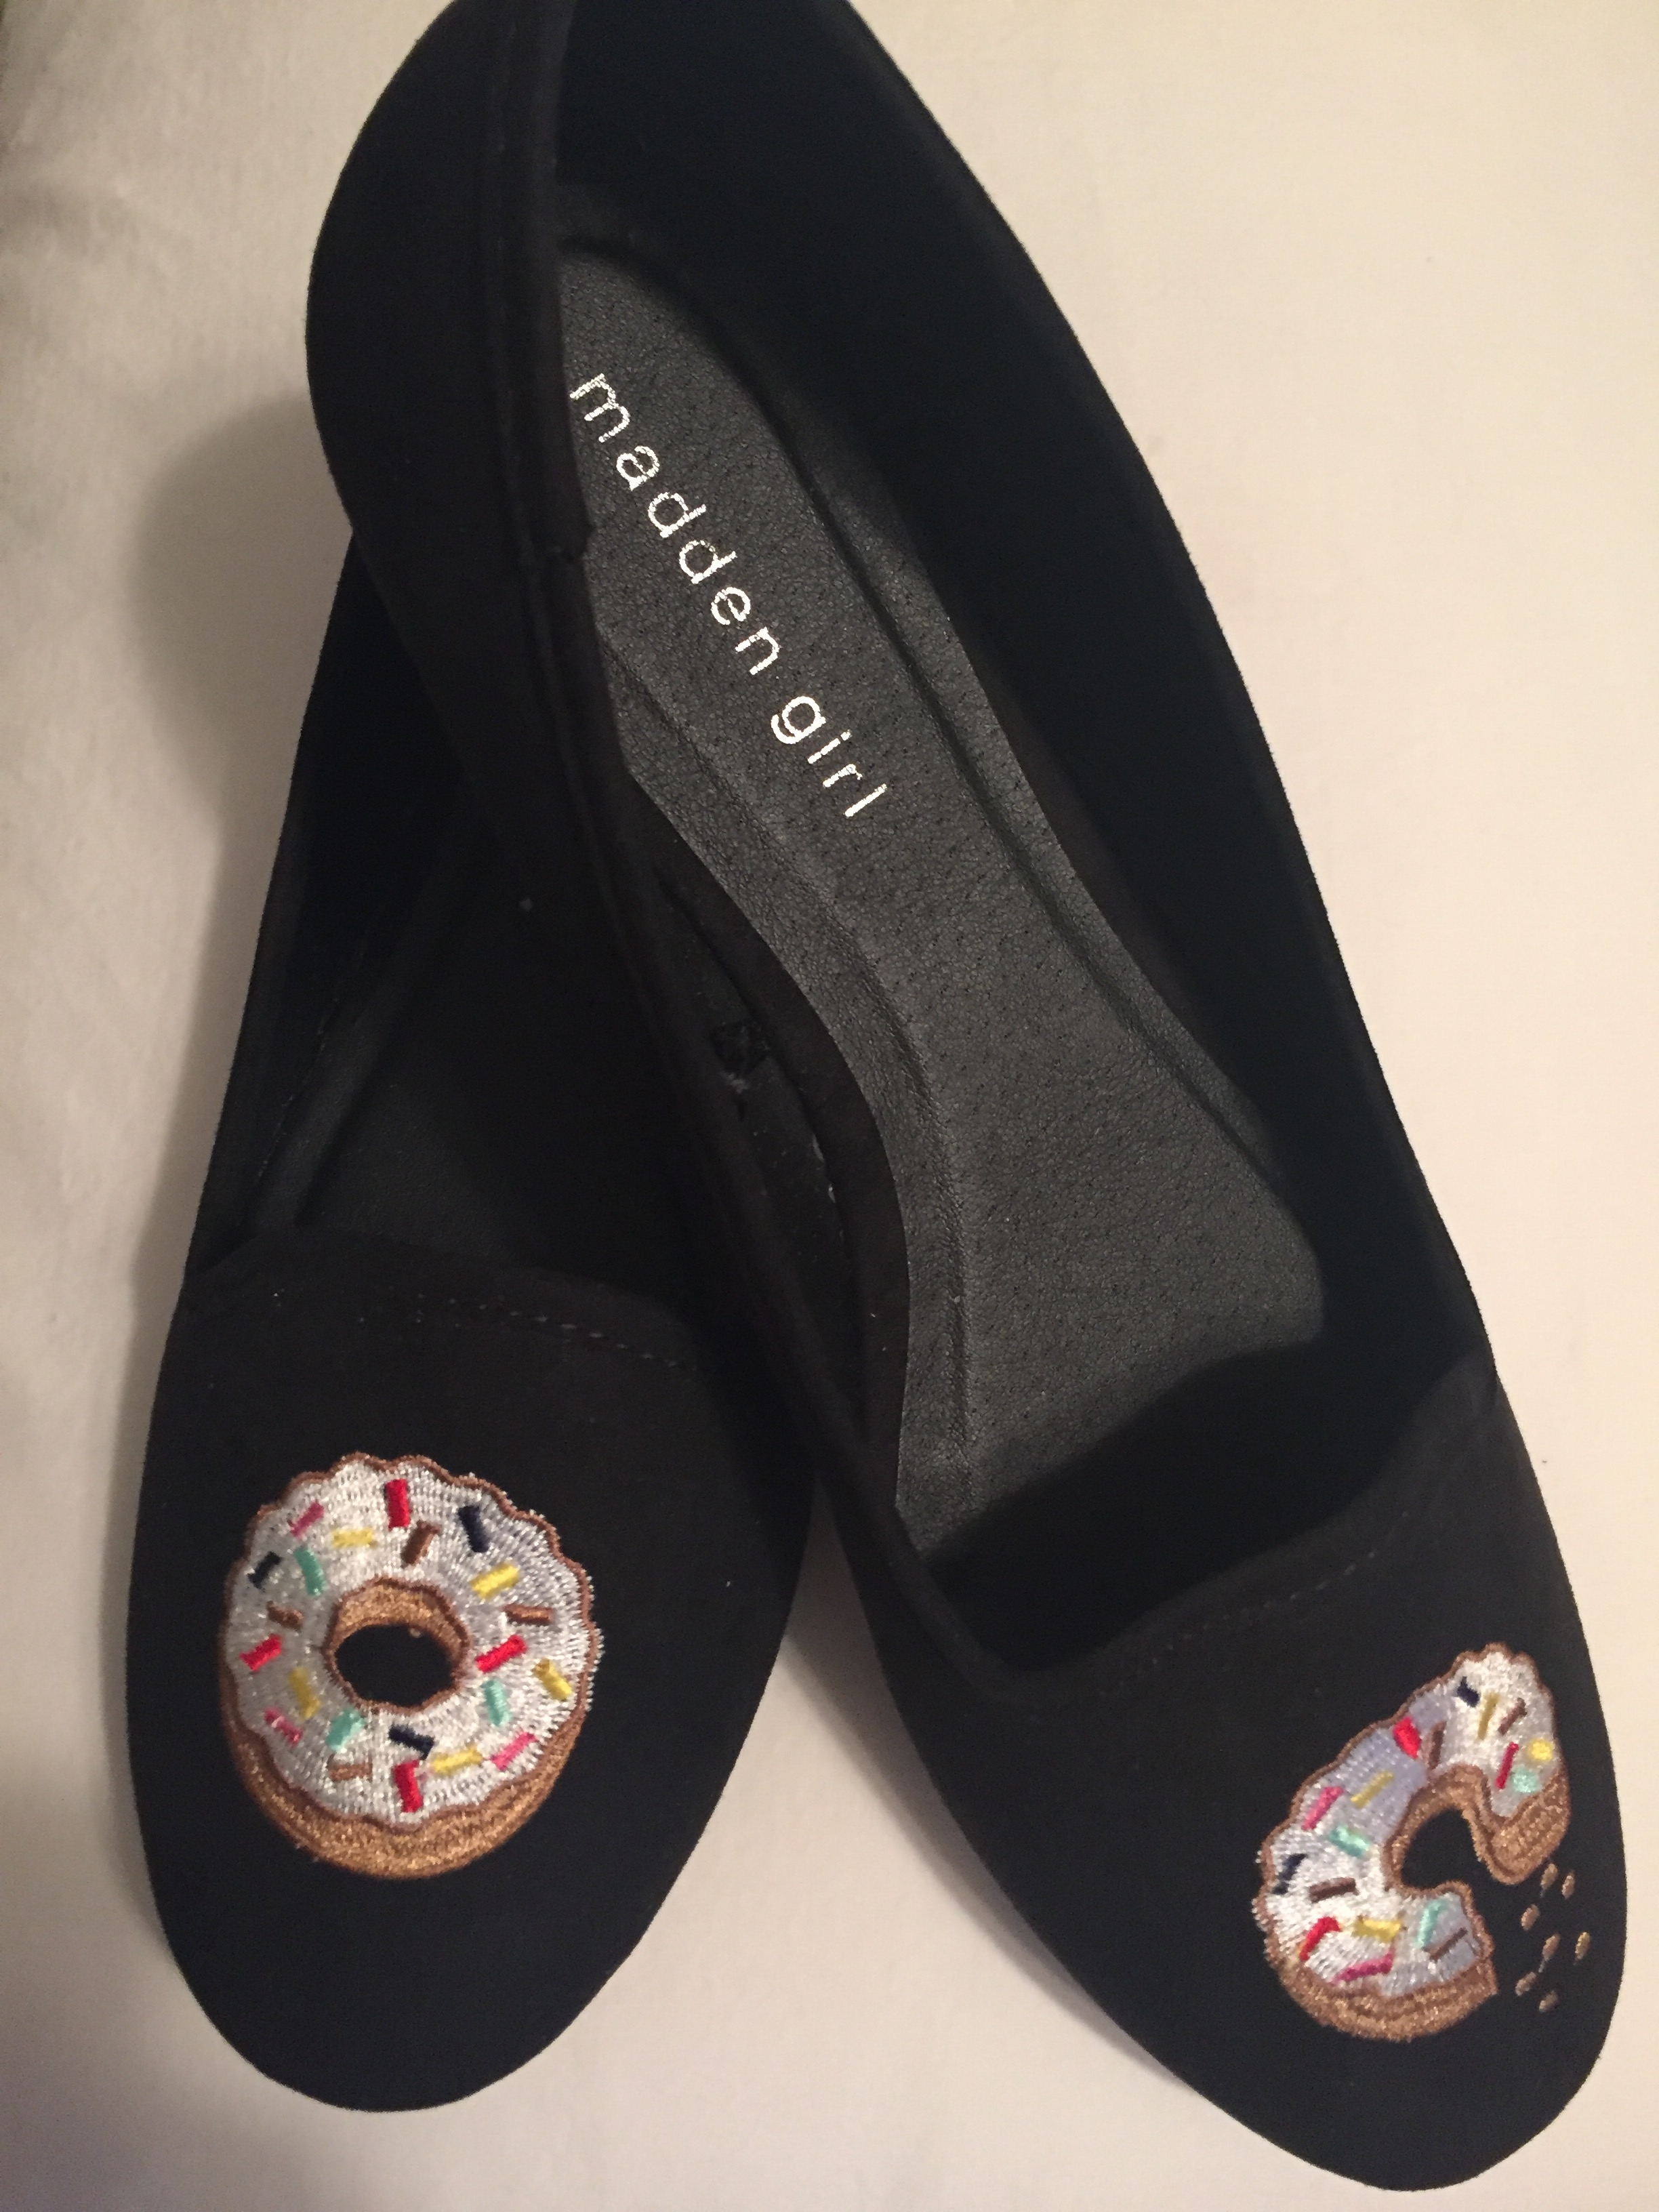 #fattofabover50 #donuts #shoes